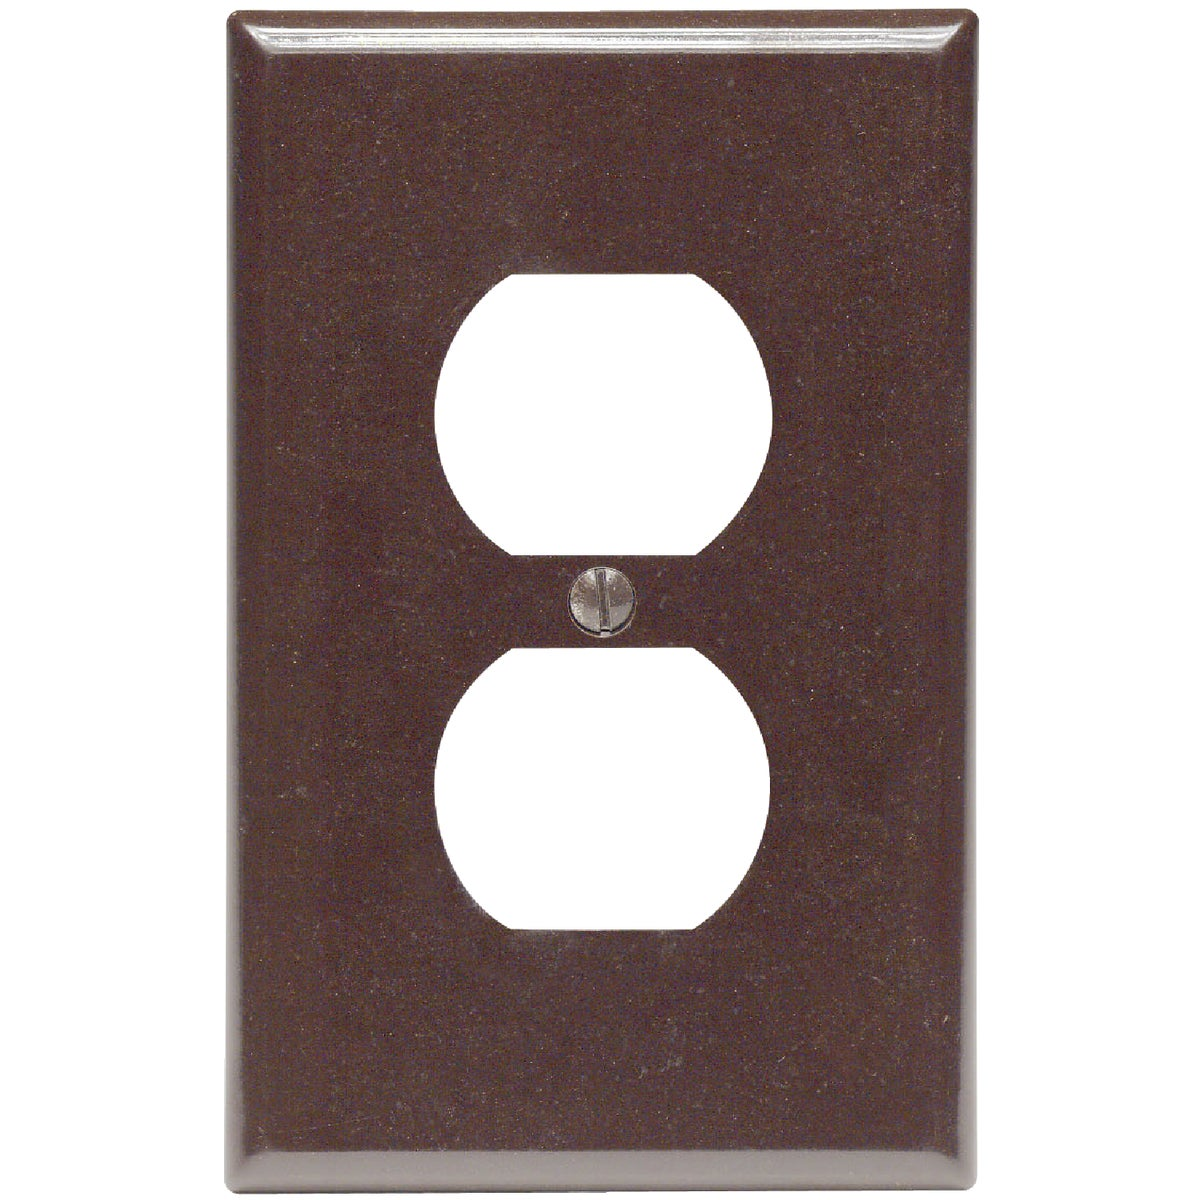 BRN OUTLET WALL PLATE - 80503 by Leviton Mfg Co